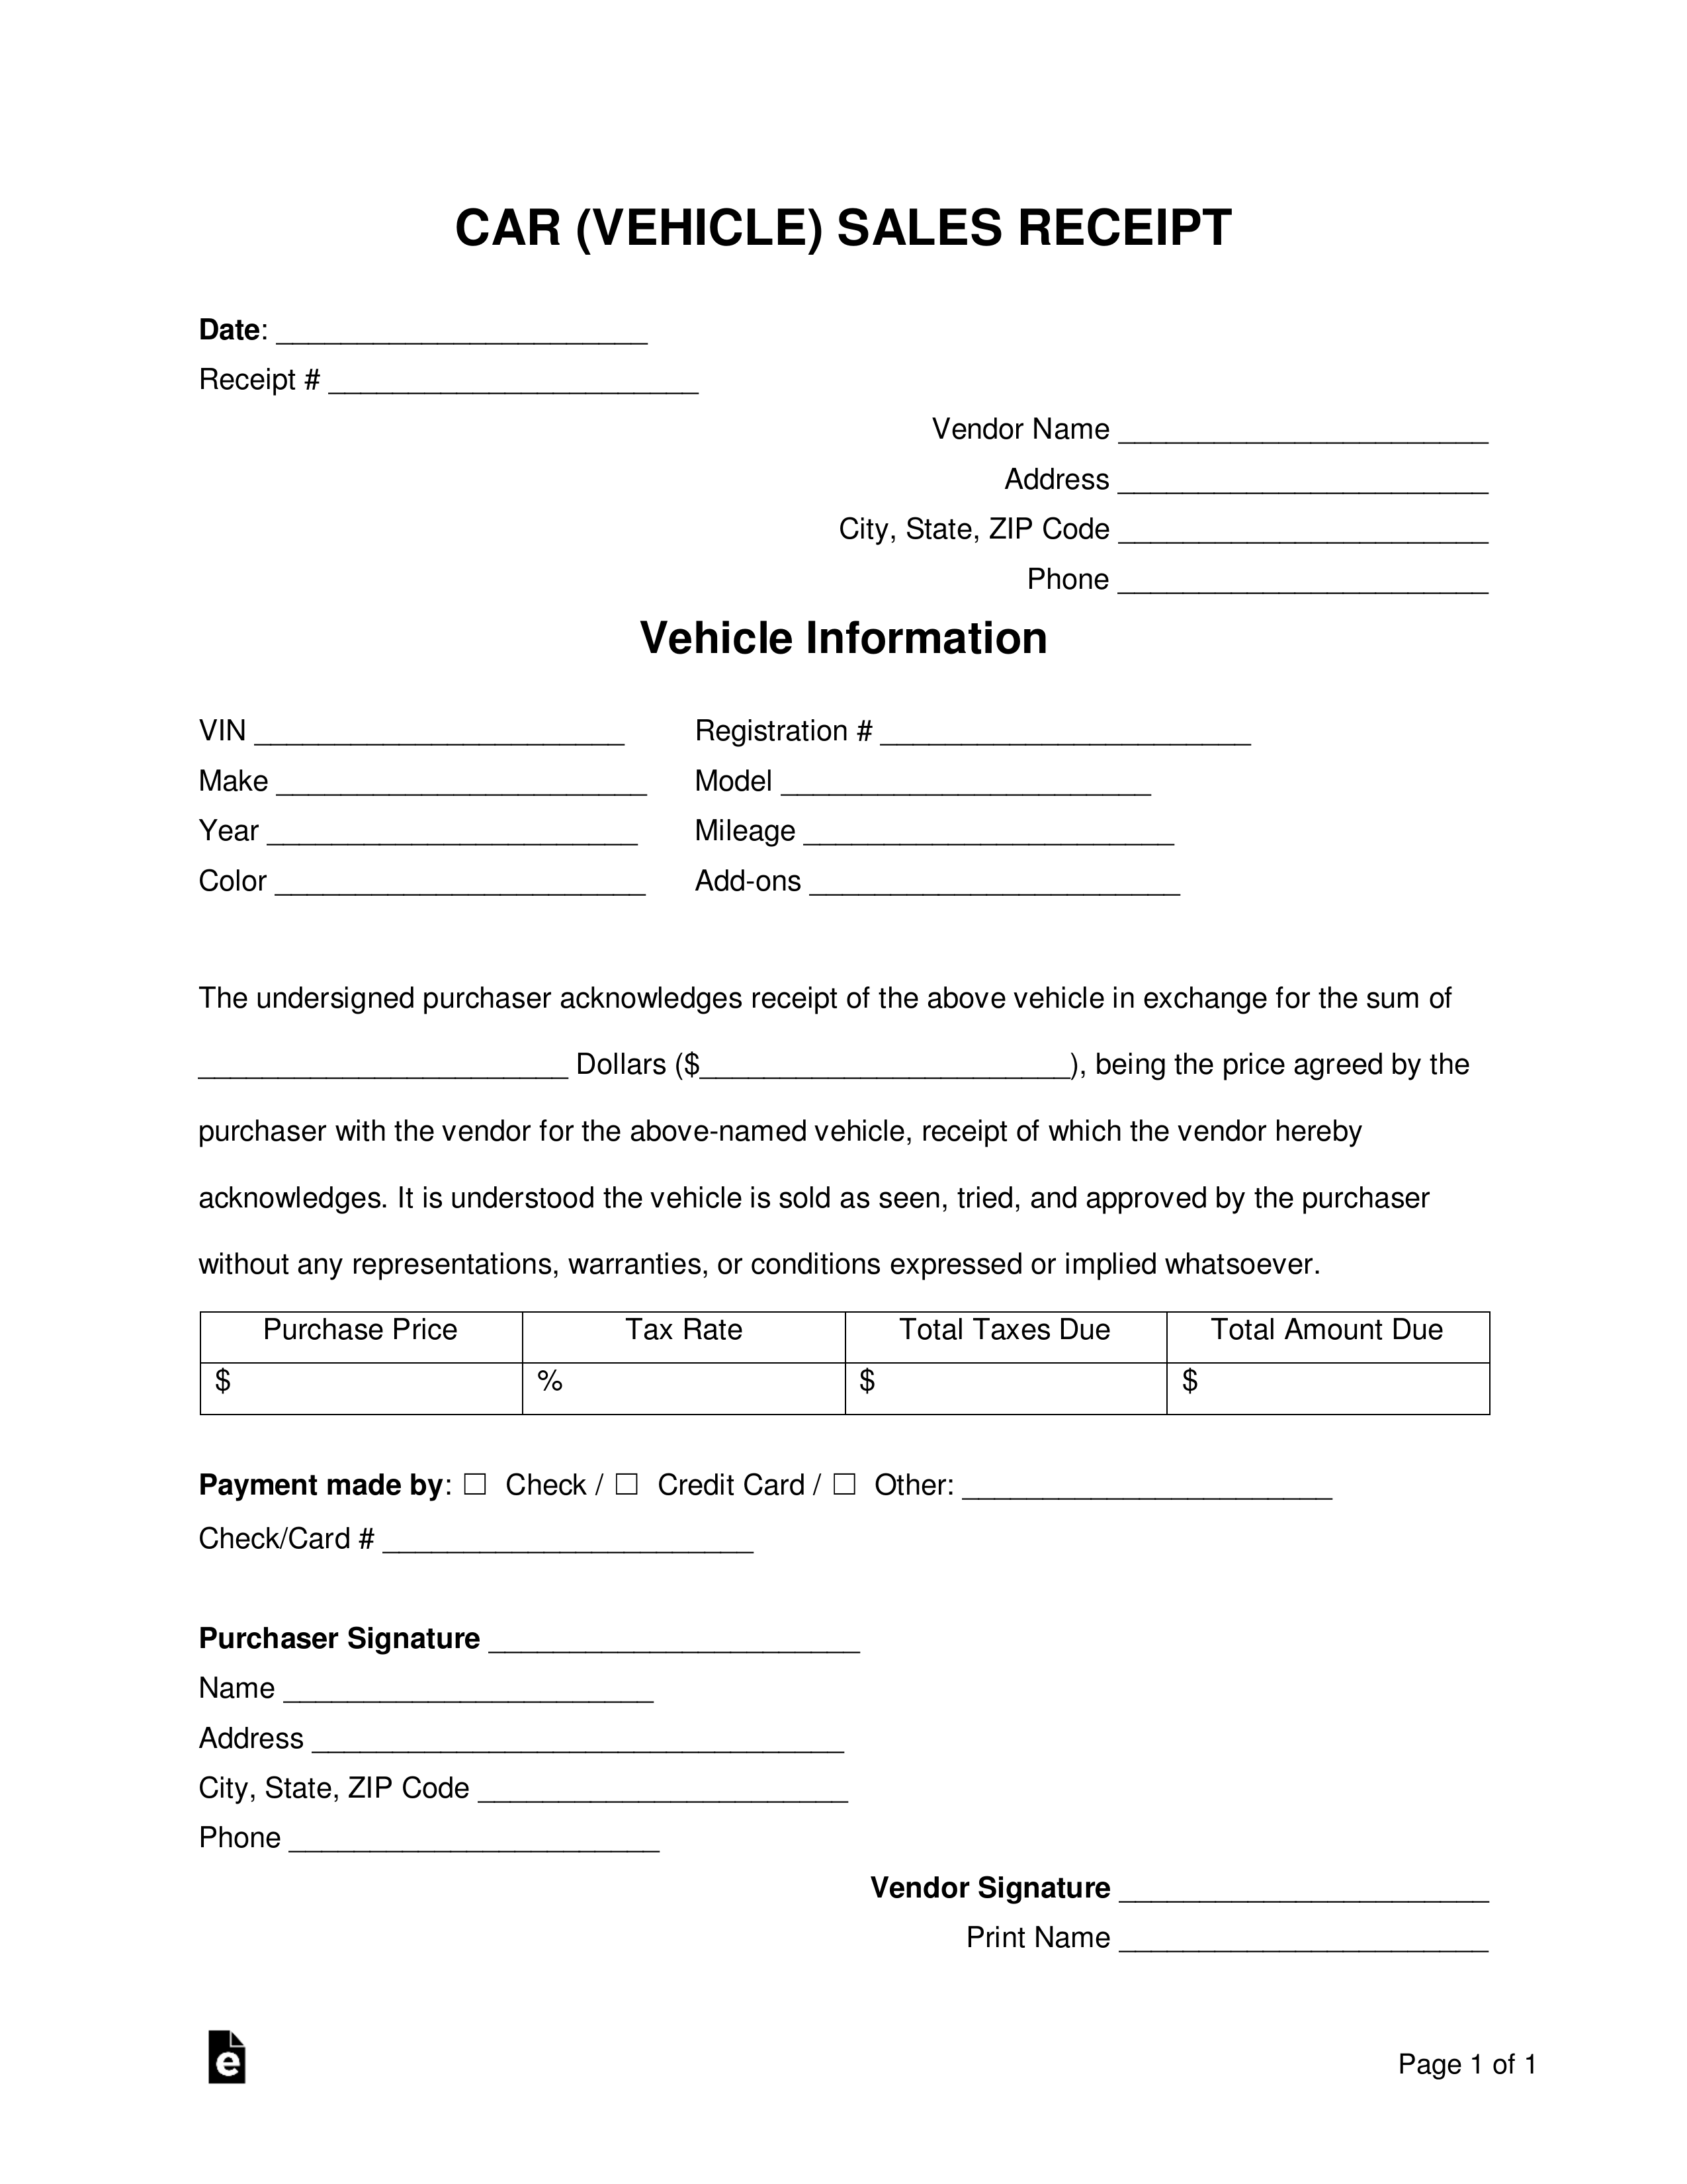 Vehicle Sales Receipt Template Free